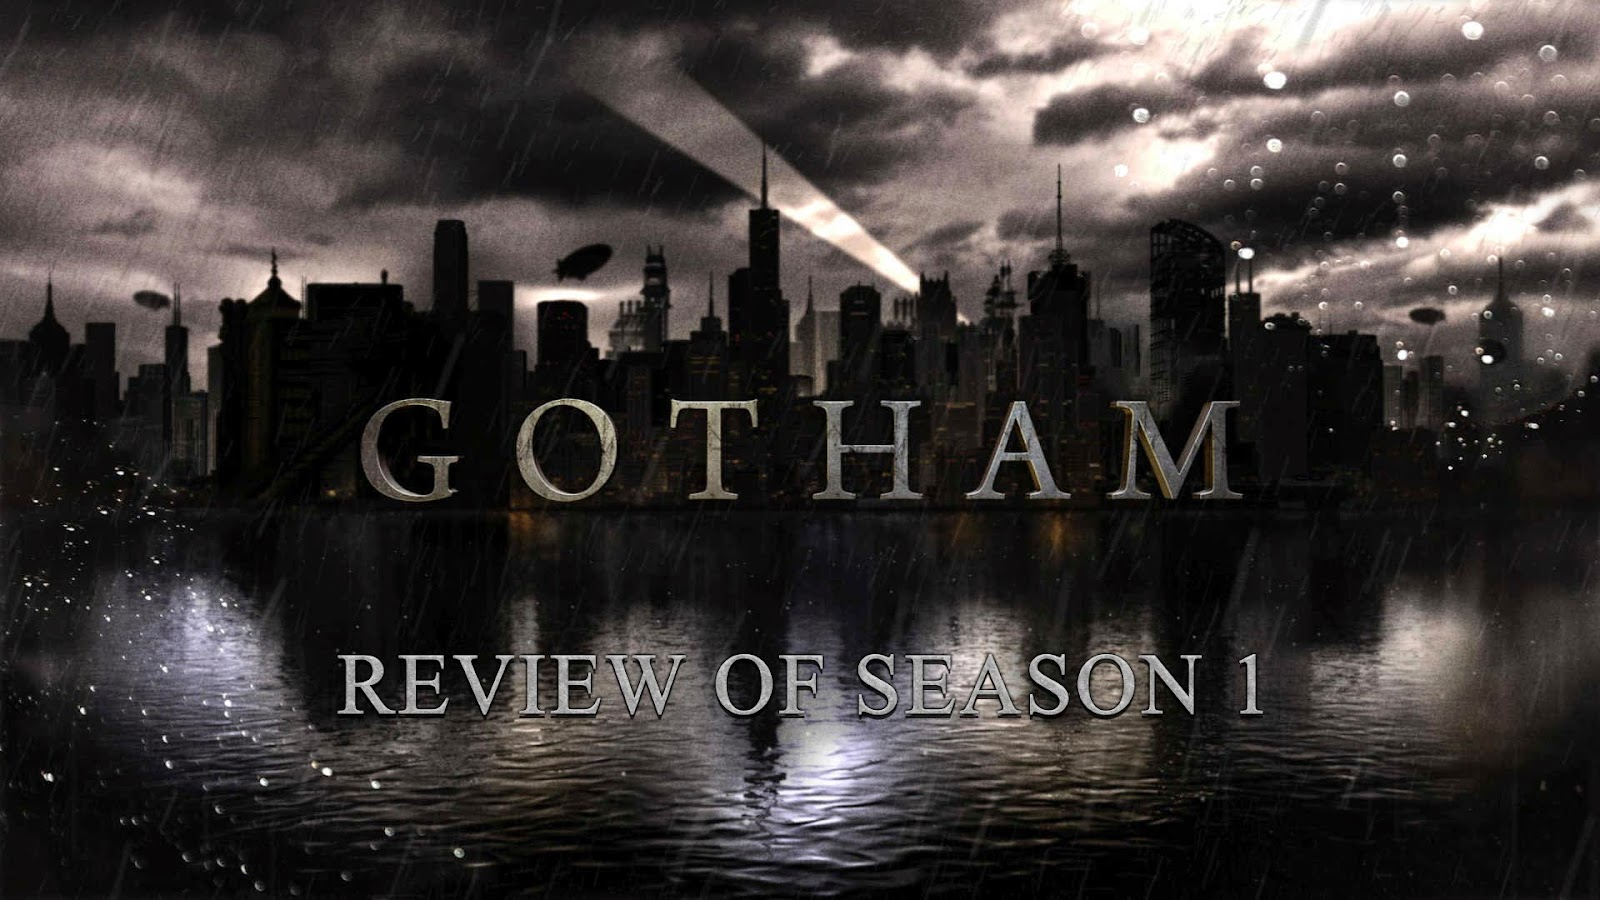 tv show review Gotham Season 1 podcast